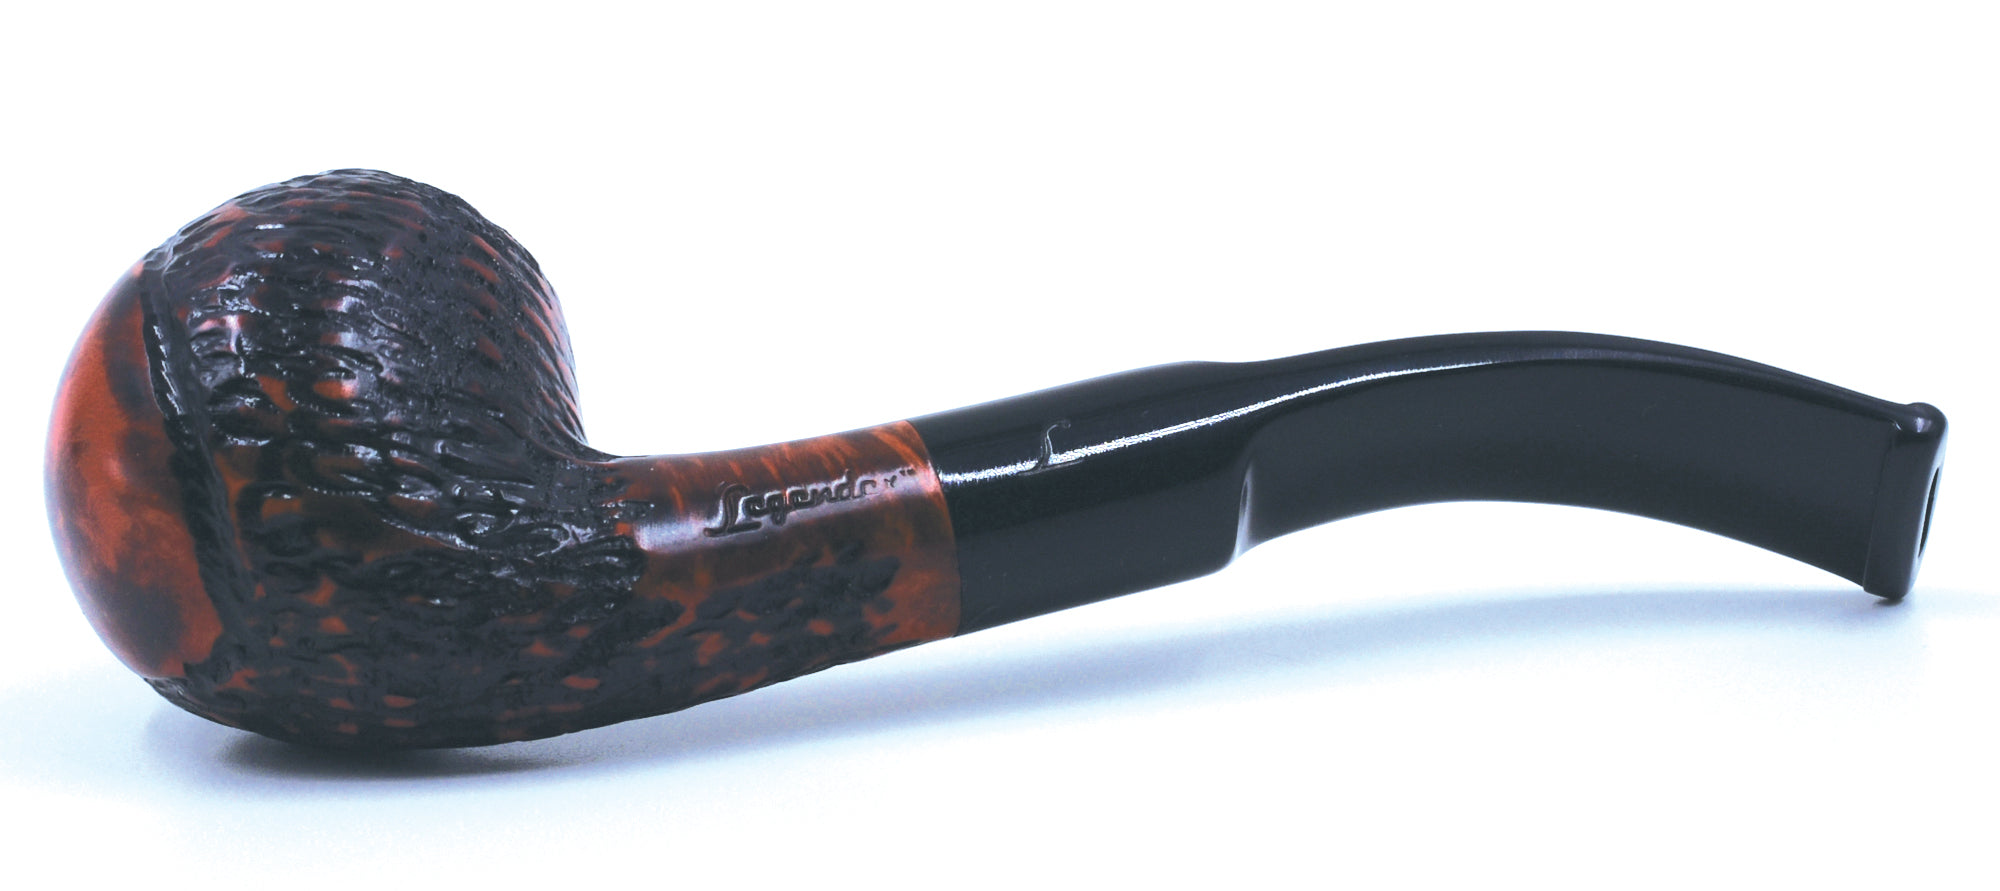 LEGENDEX® SCALADI* 9 MM Filtered Briar Smoking Pipe Made In Italy 01-08-111